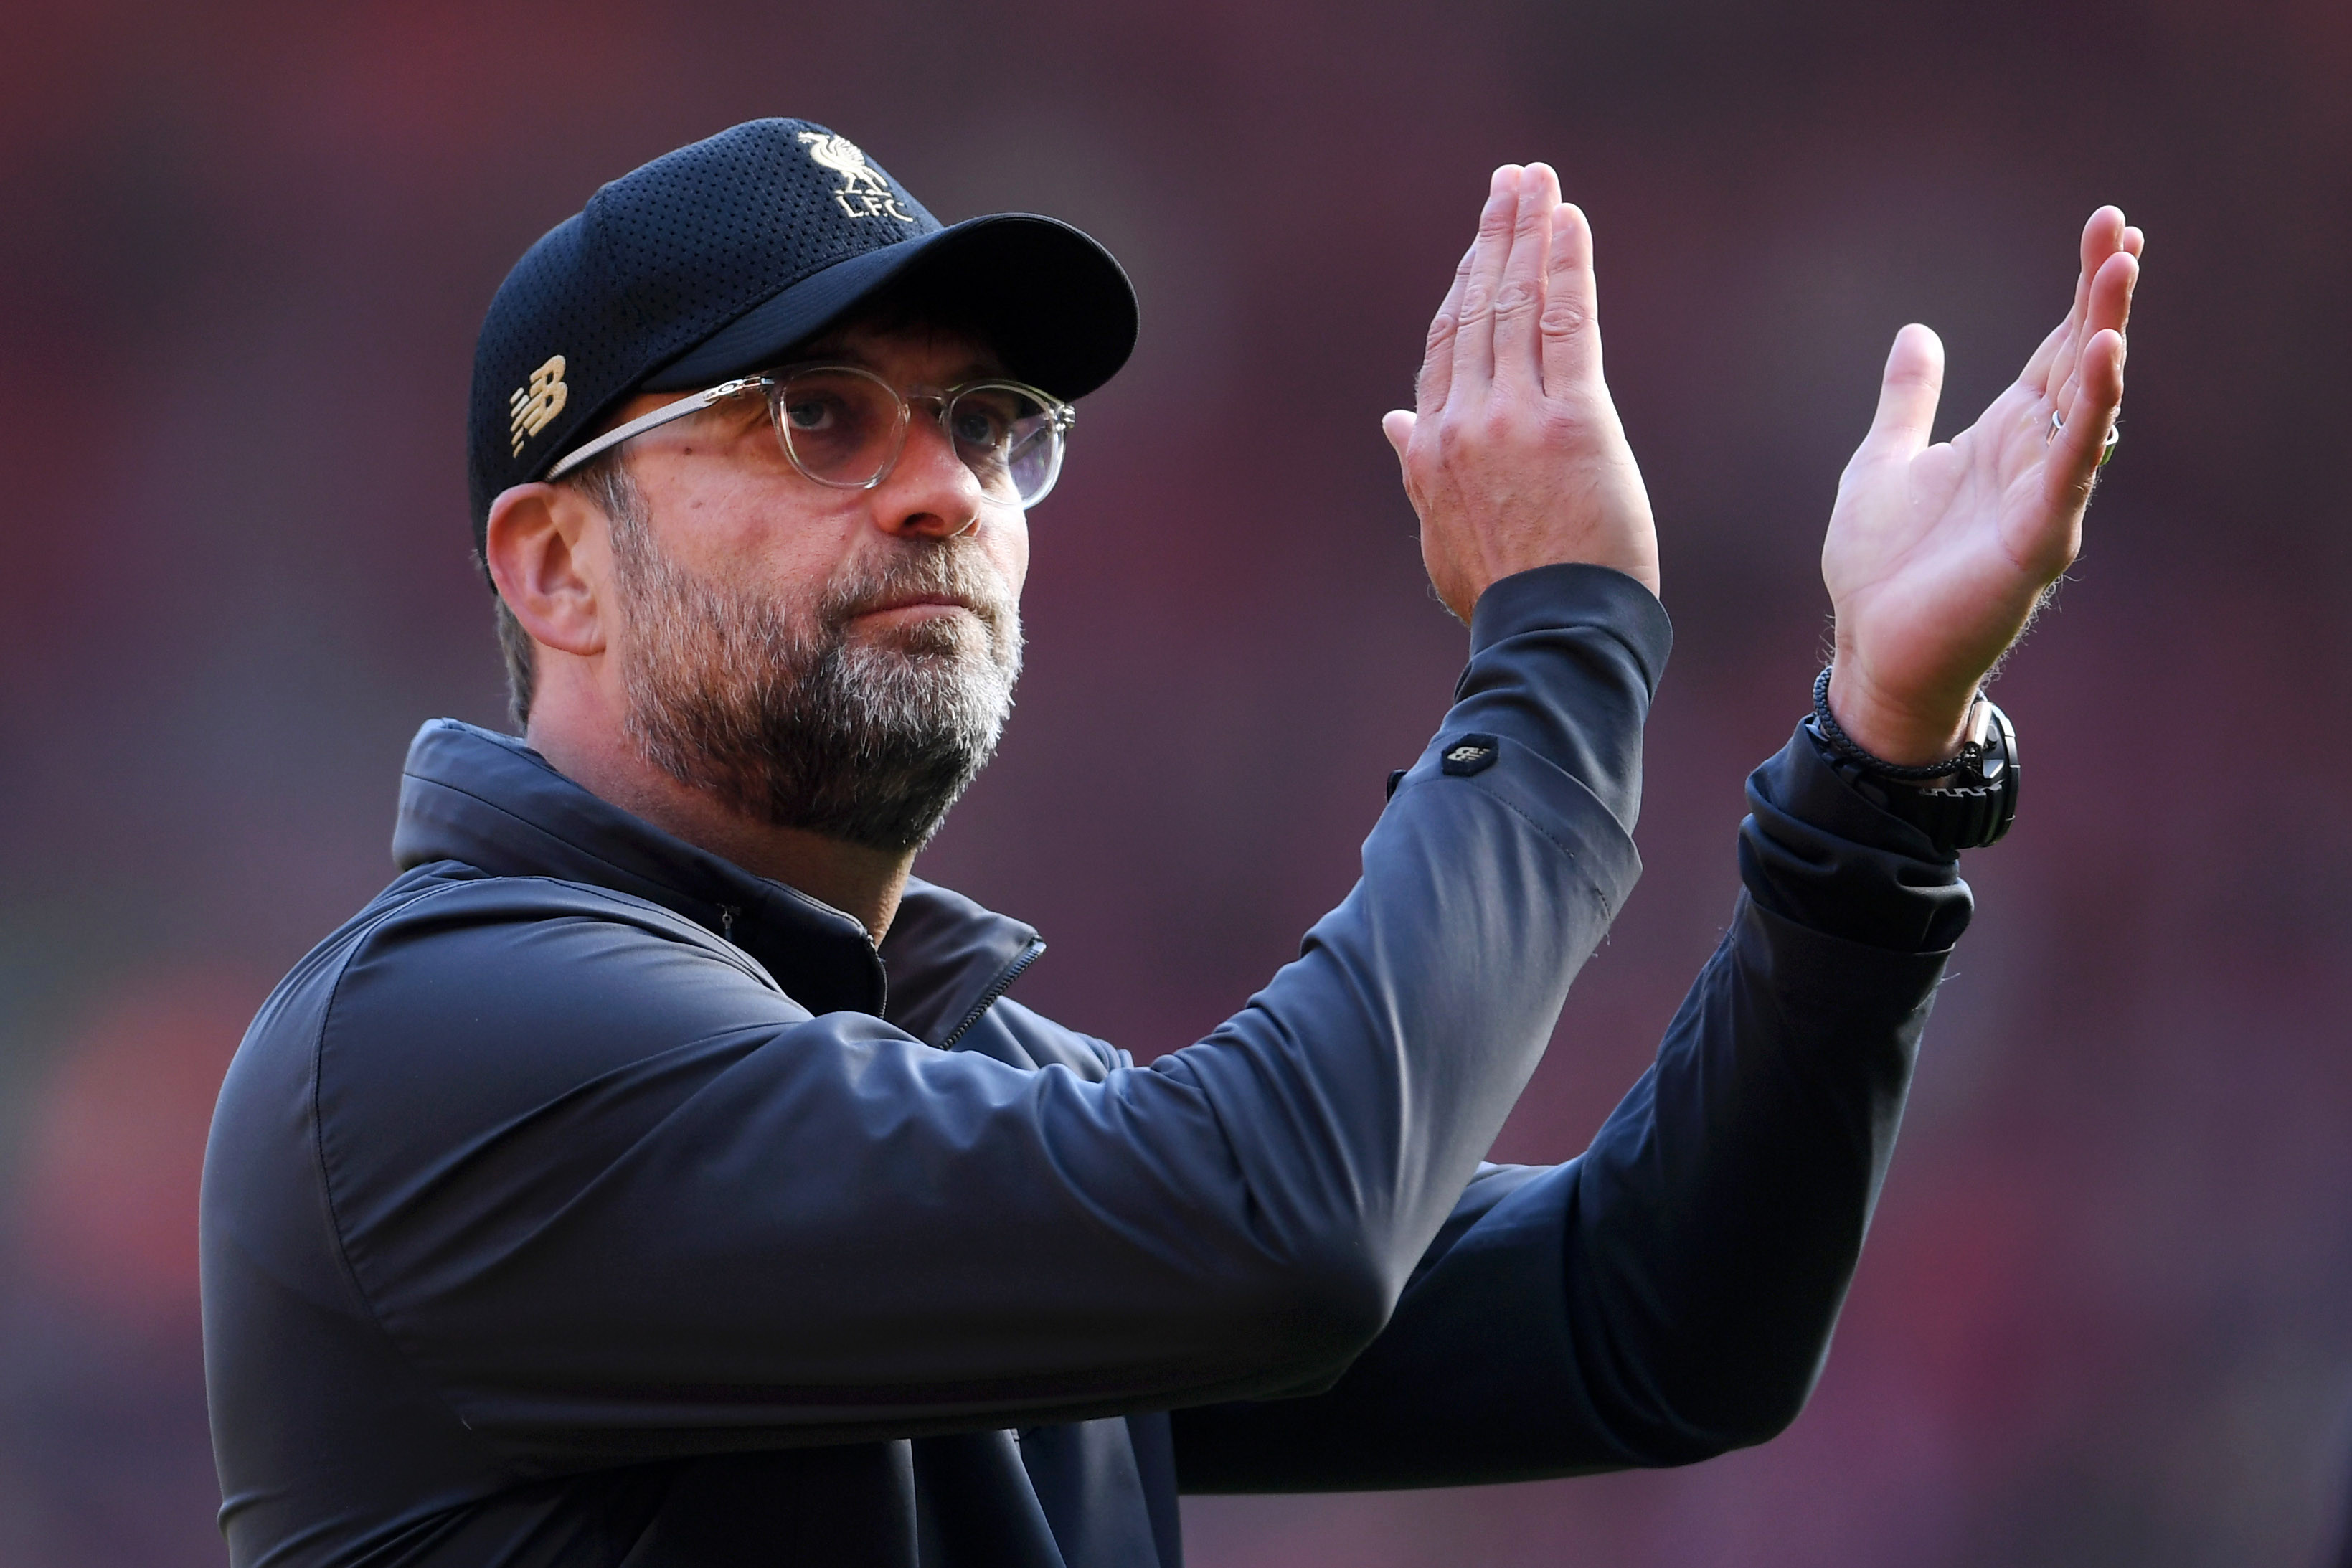 Klopp wants to guide Liverpool to Champions League success after missing out on the Premier League title